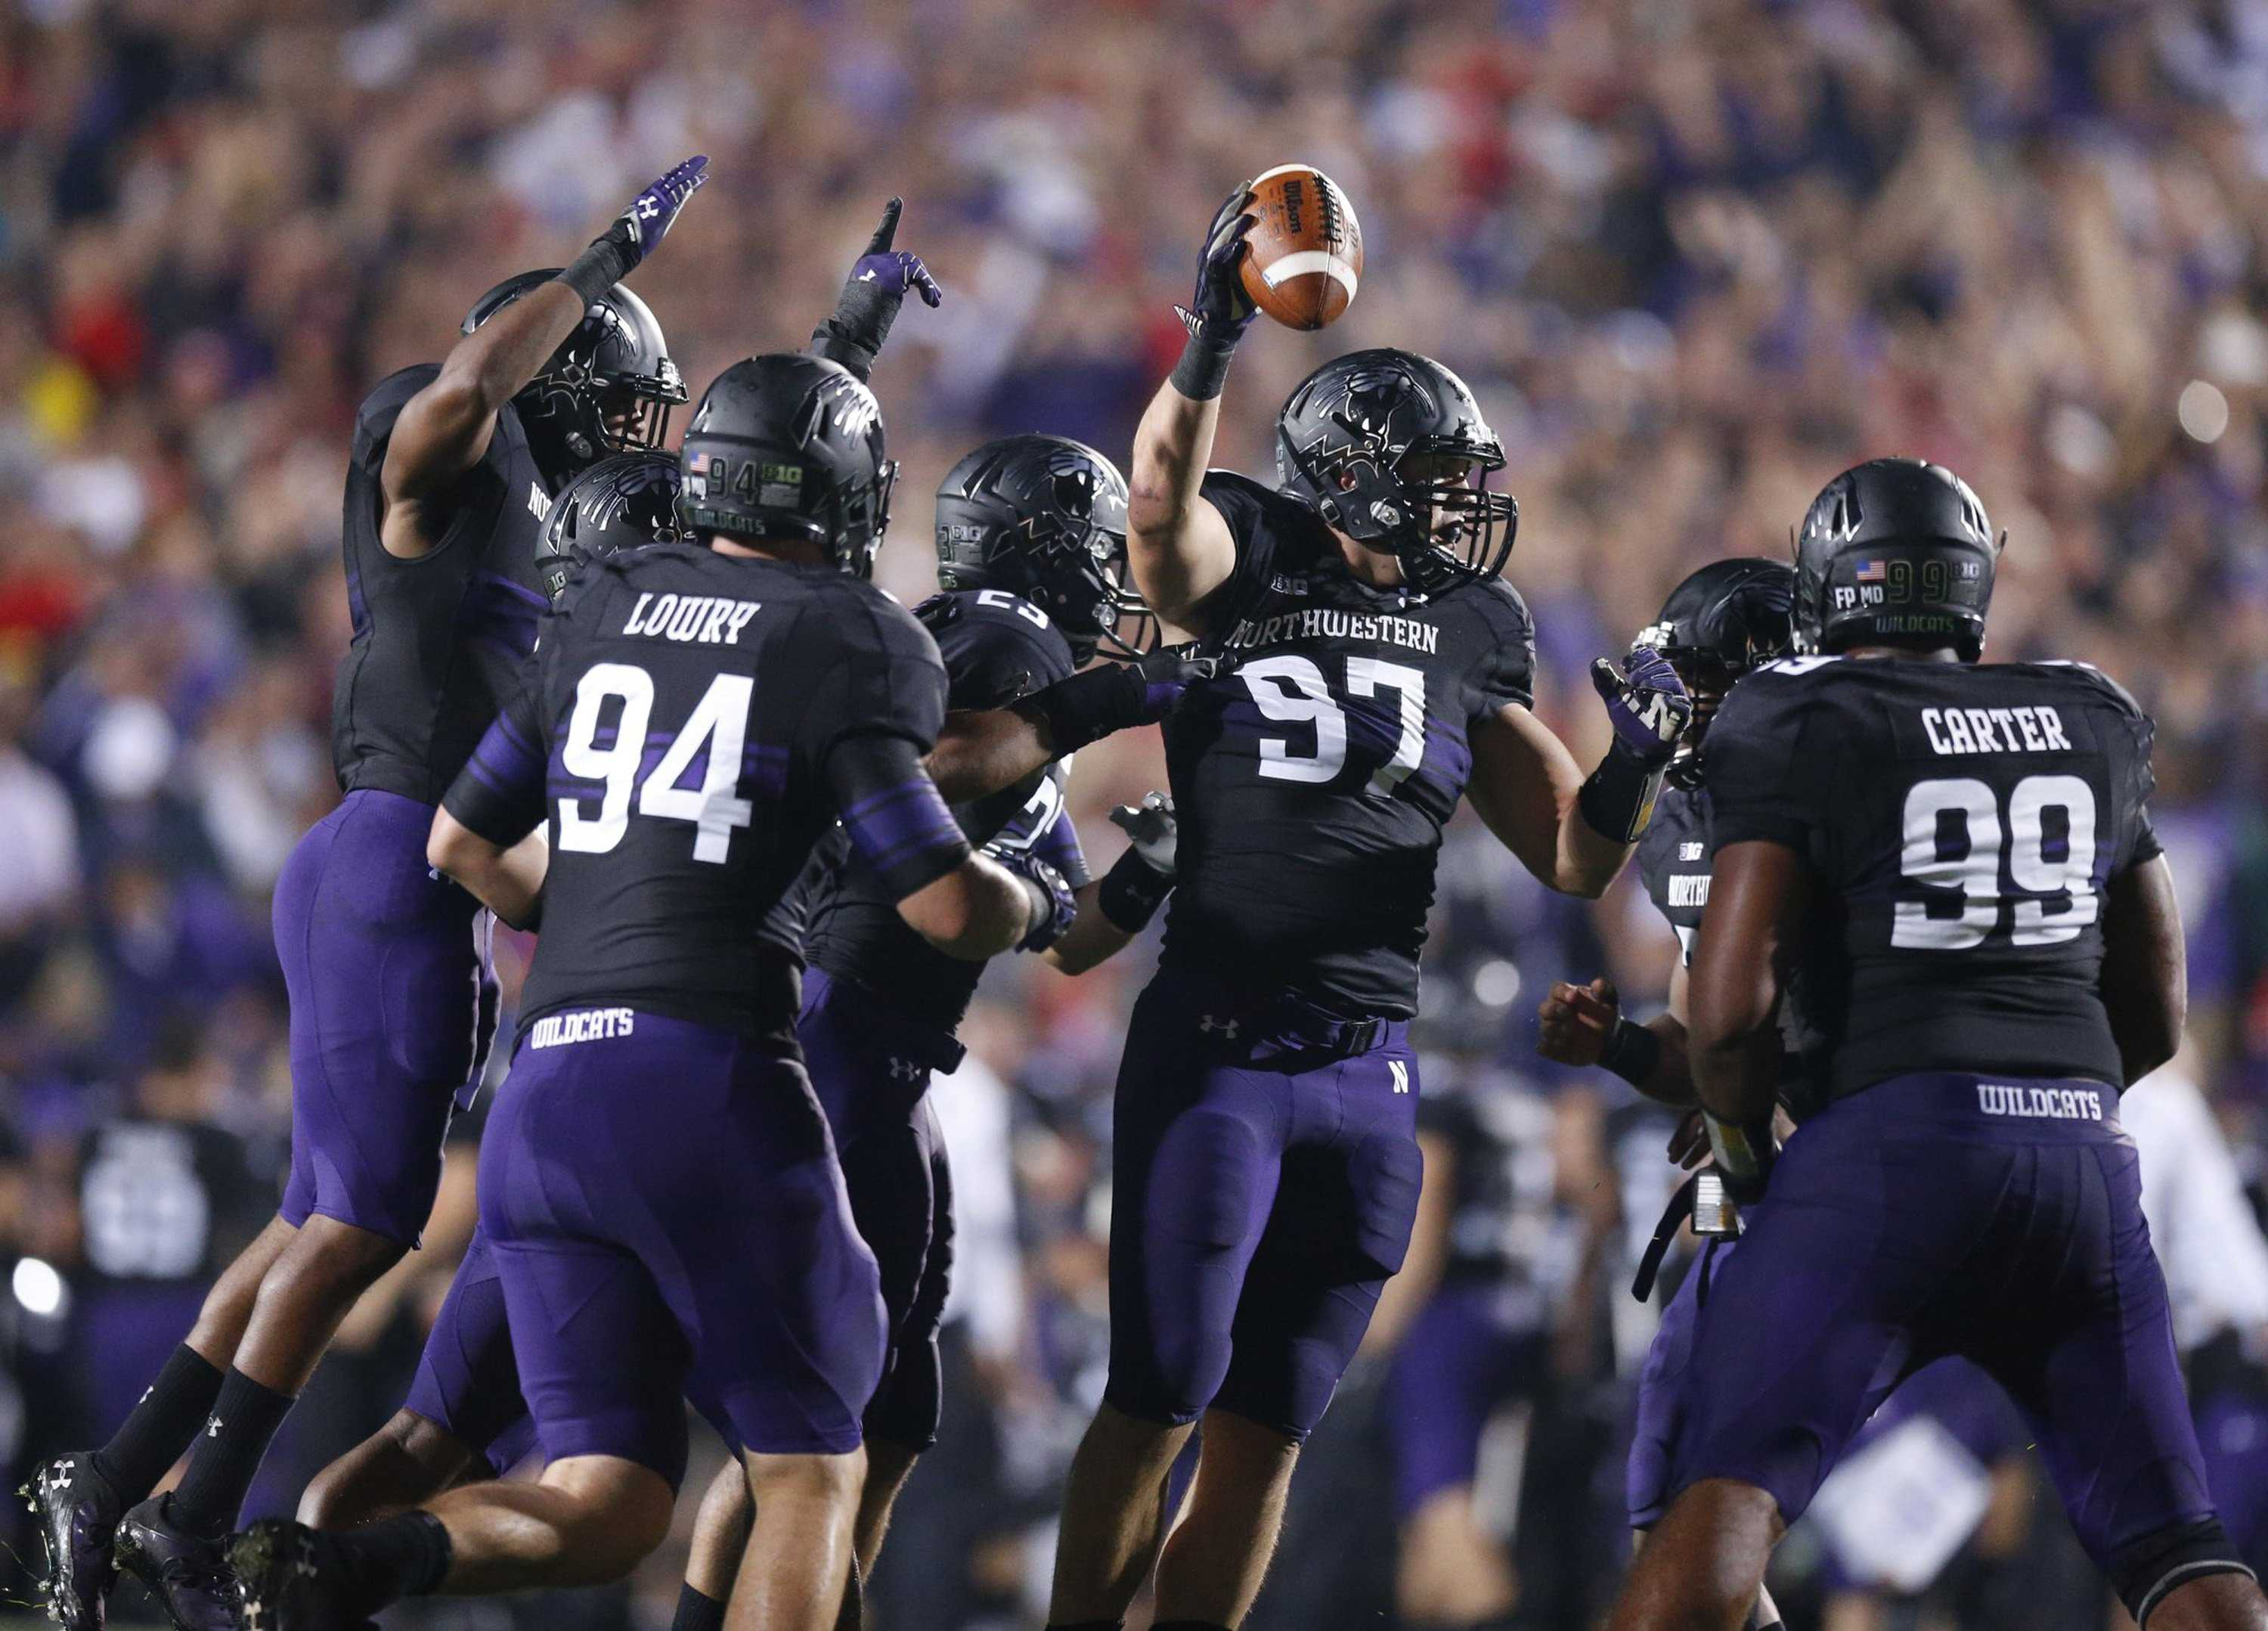 Northwestern defensive players celebrate the recovery of a fumble. (Barbara J. Perenic/Columbus Dispatch/MCT)